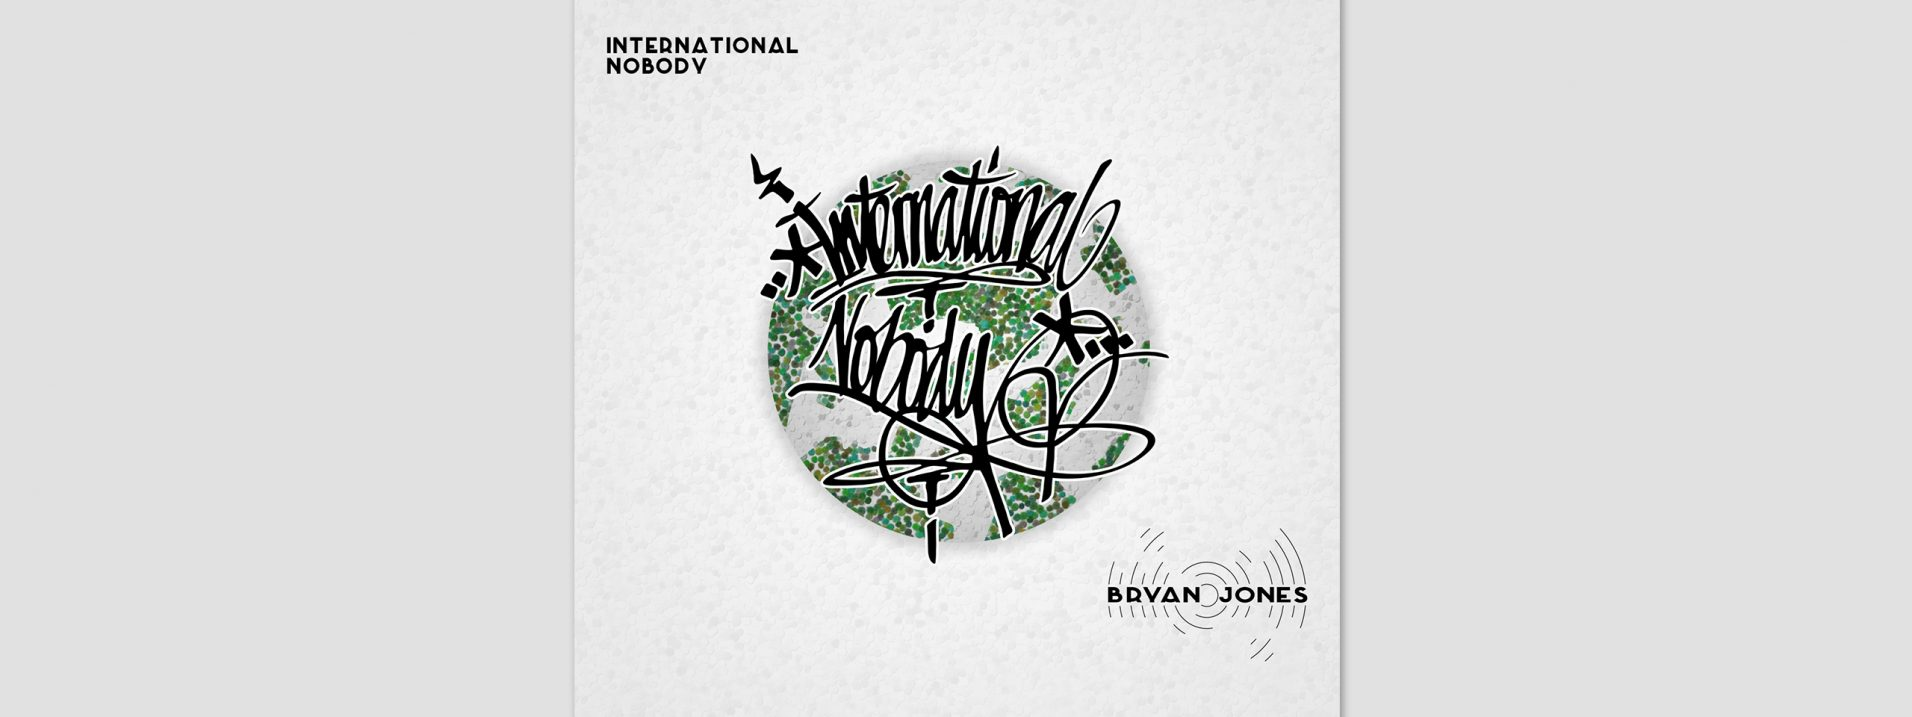 Illustration and design by dephined for Bryan Jones - International Nobody